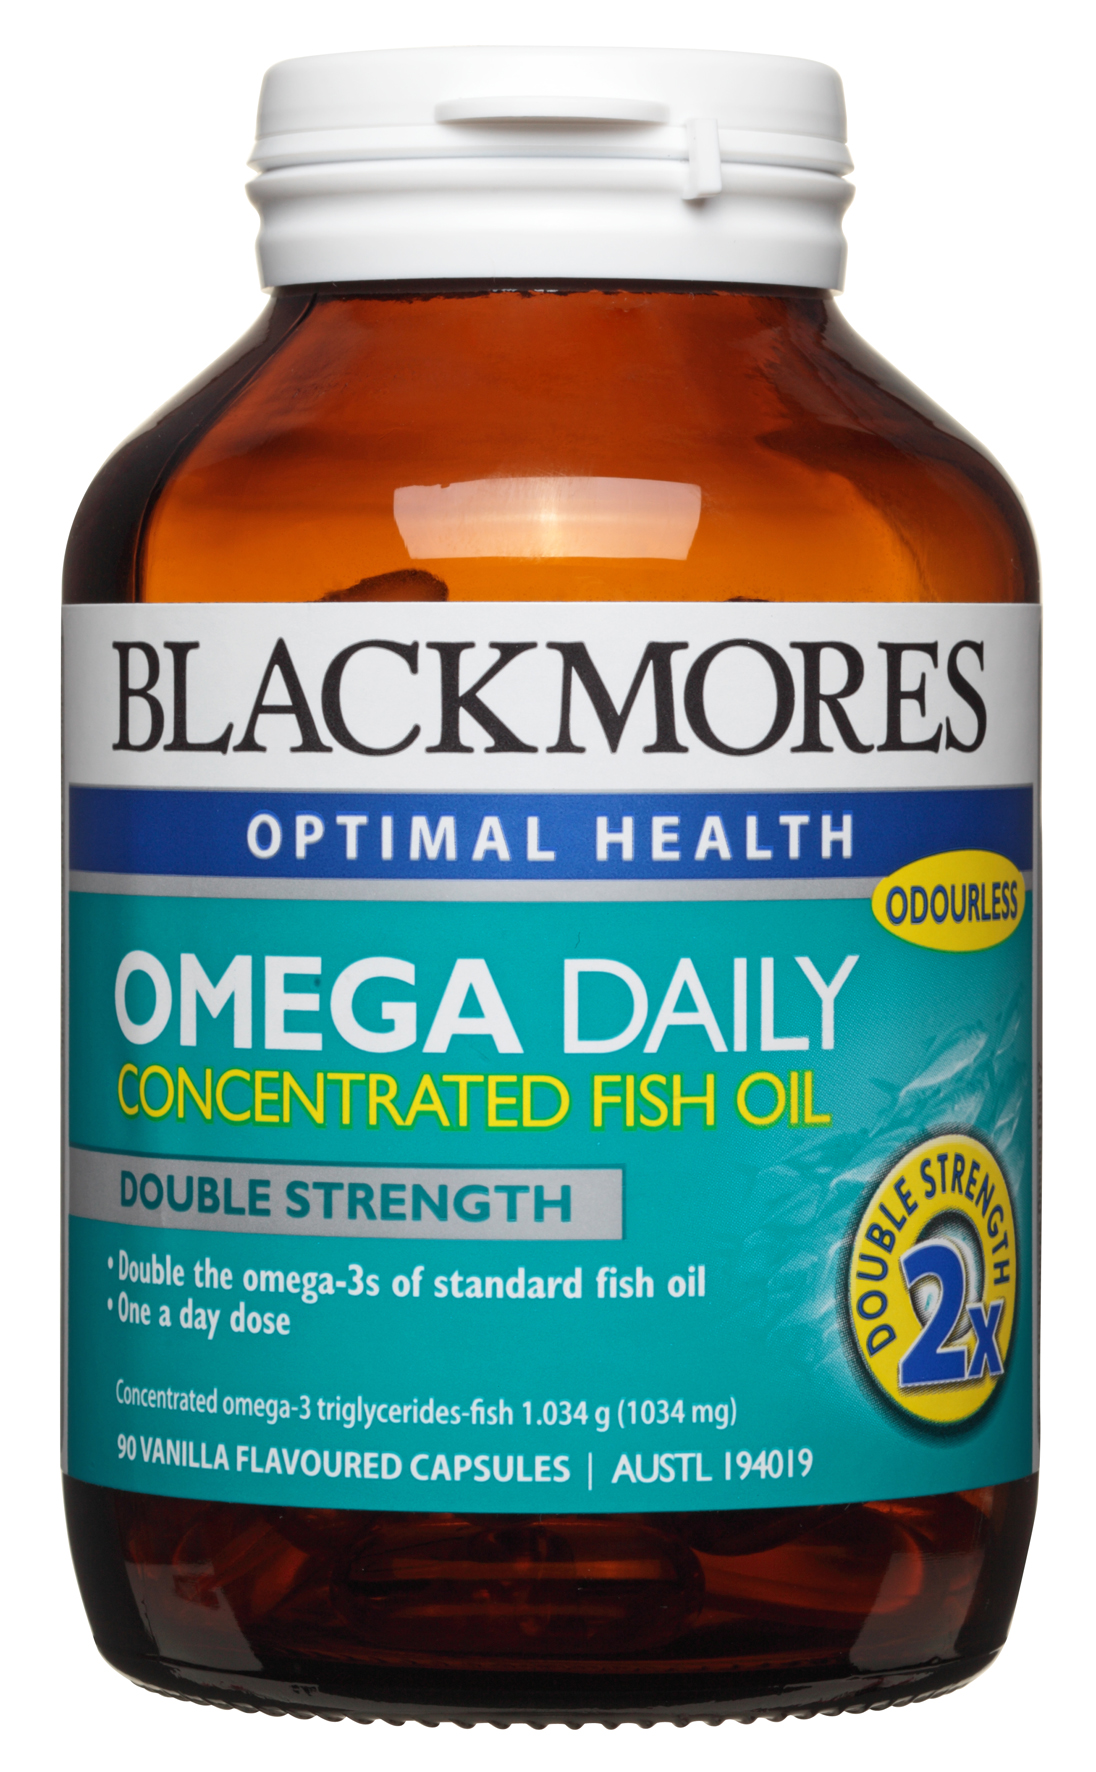 Omega daily pharmacy express for Omega 3 fish oil reviews